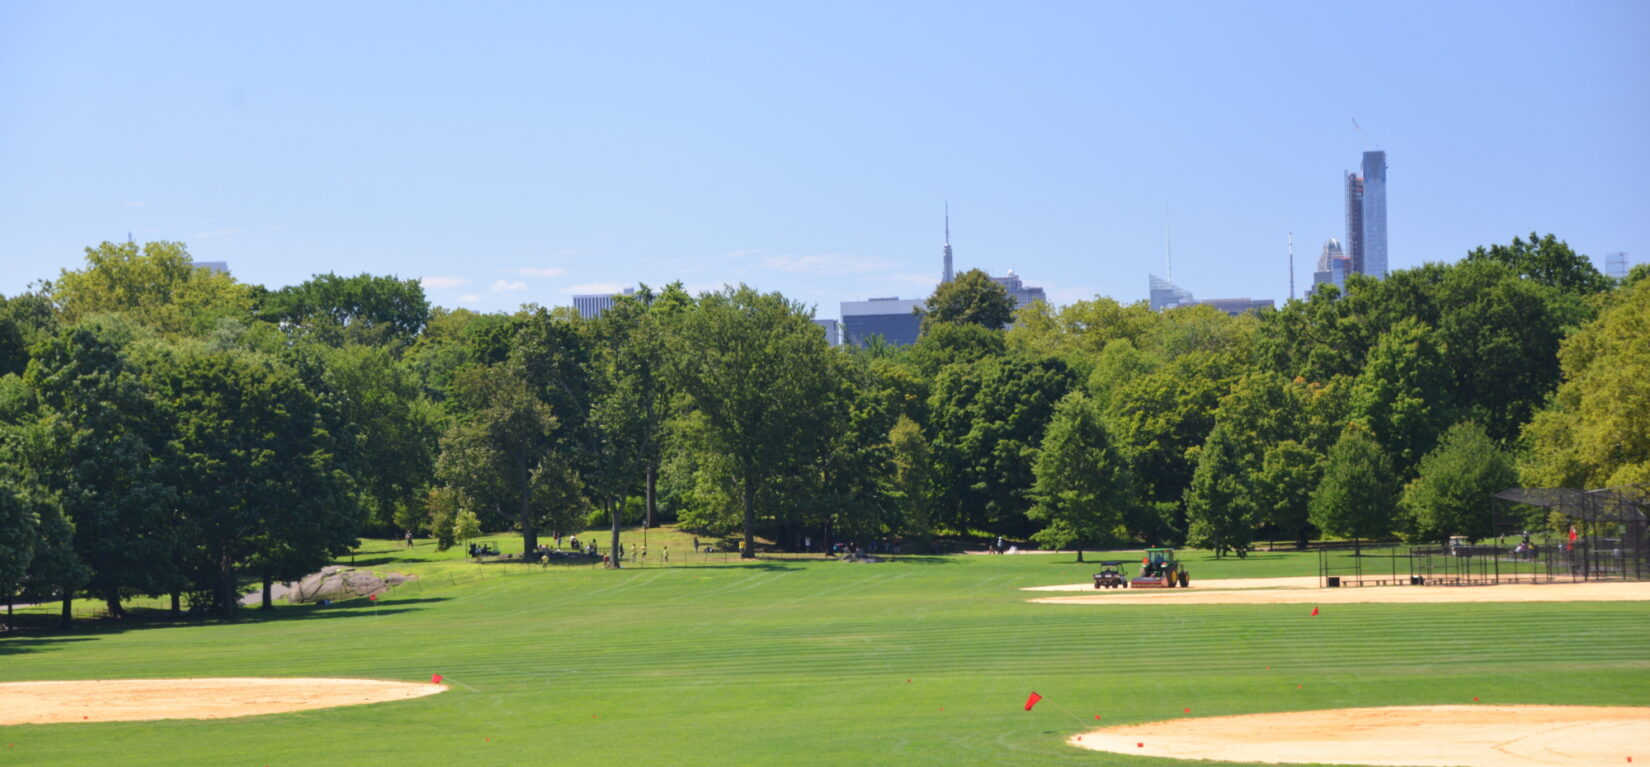 The ballfields at North Meadow under a cloudless blue sky